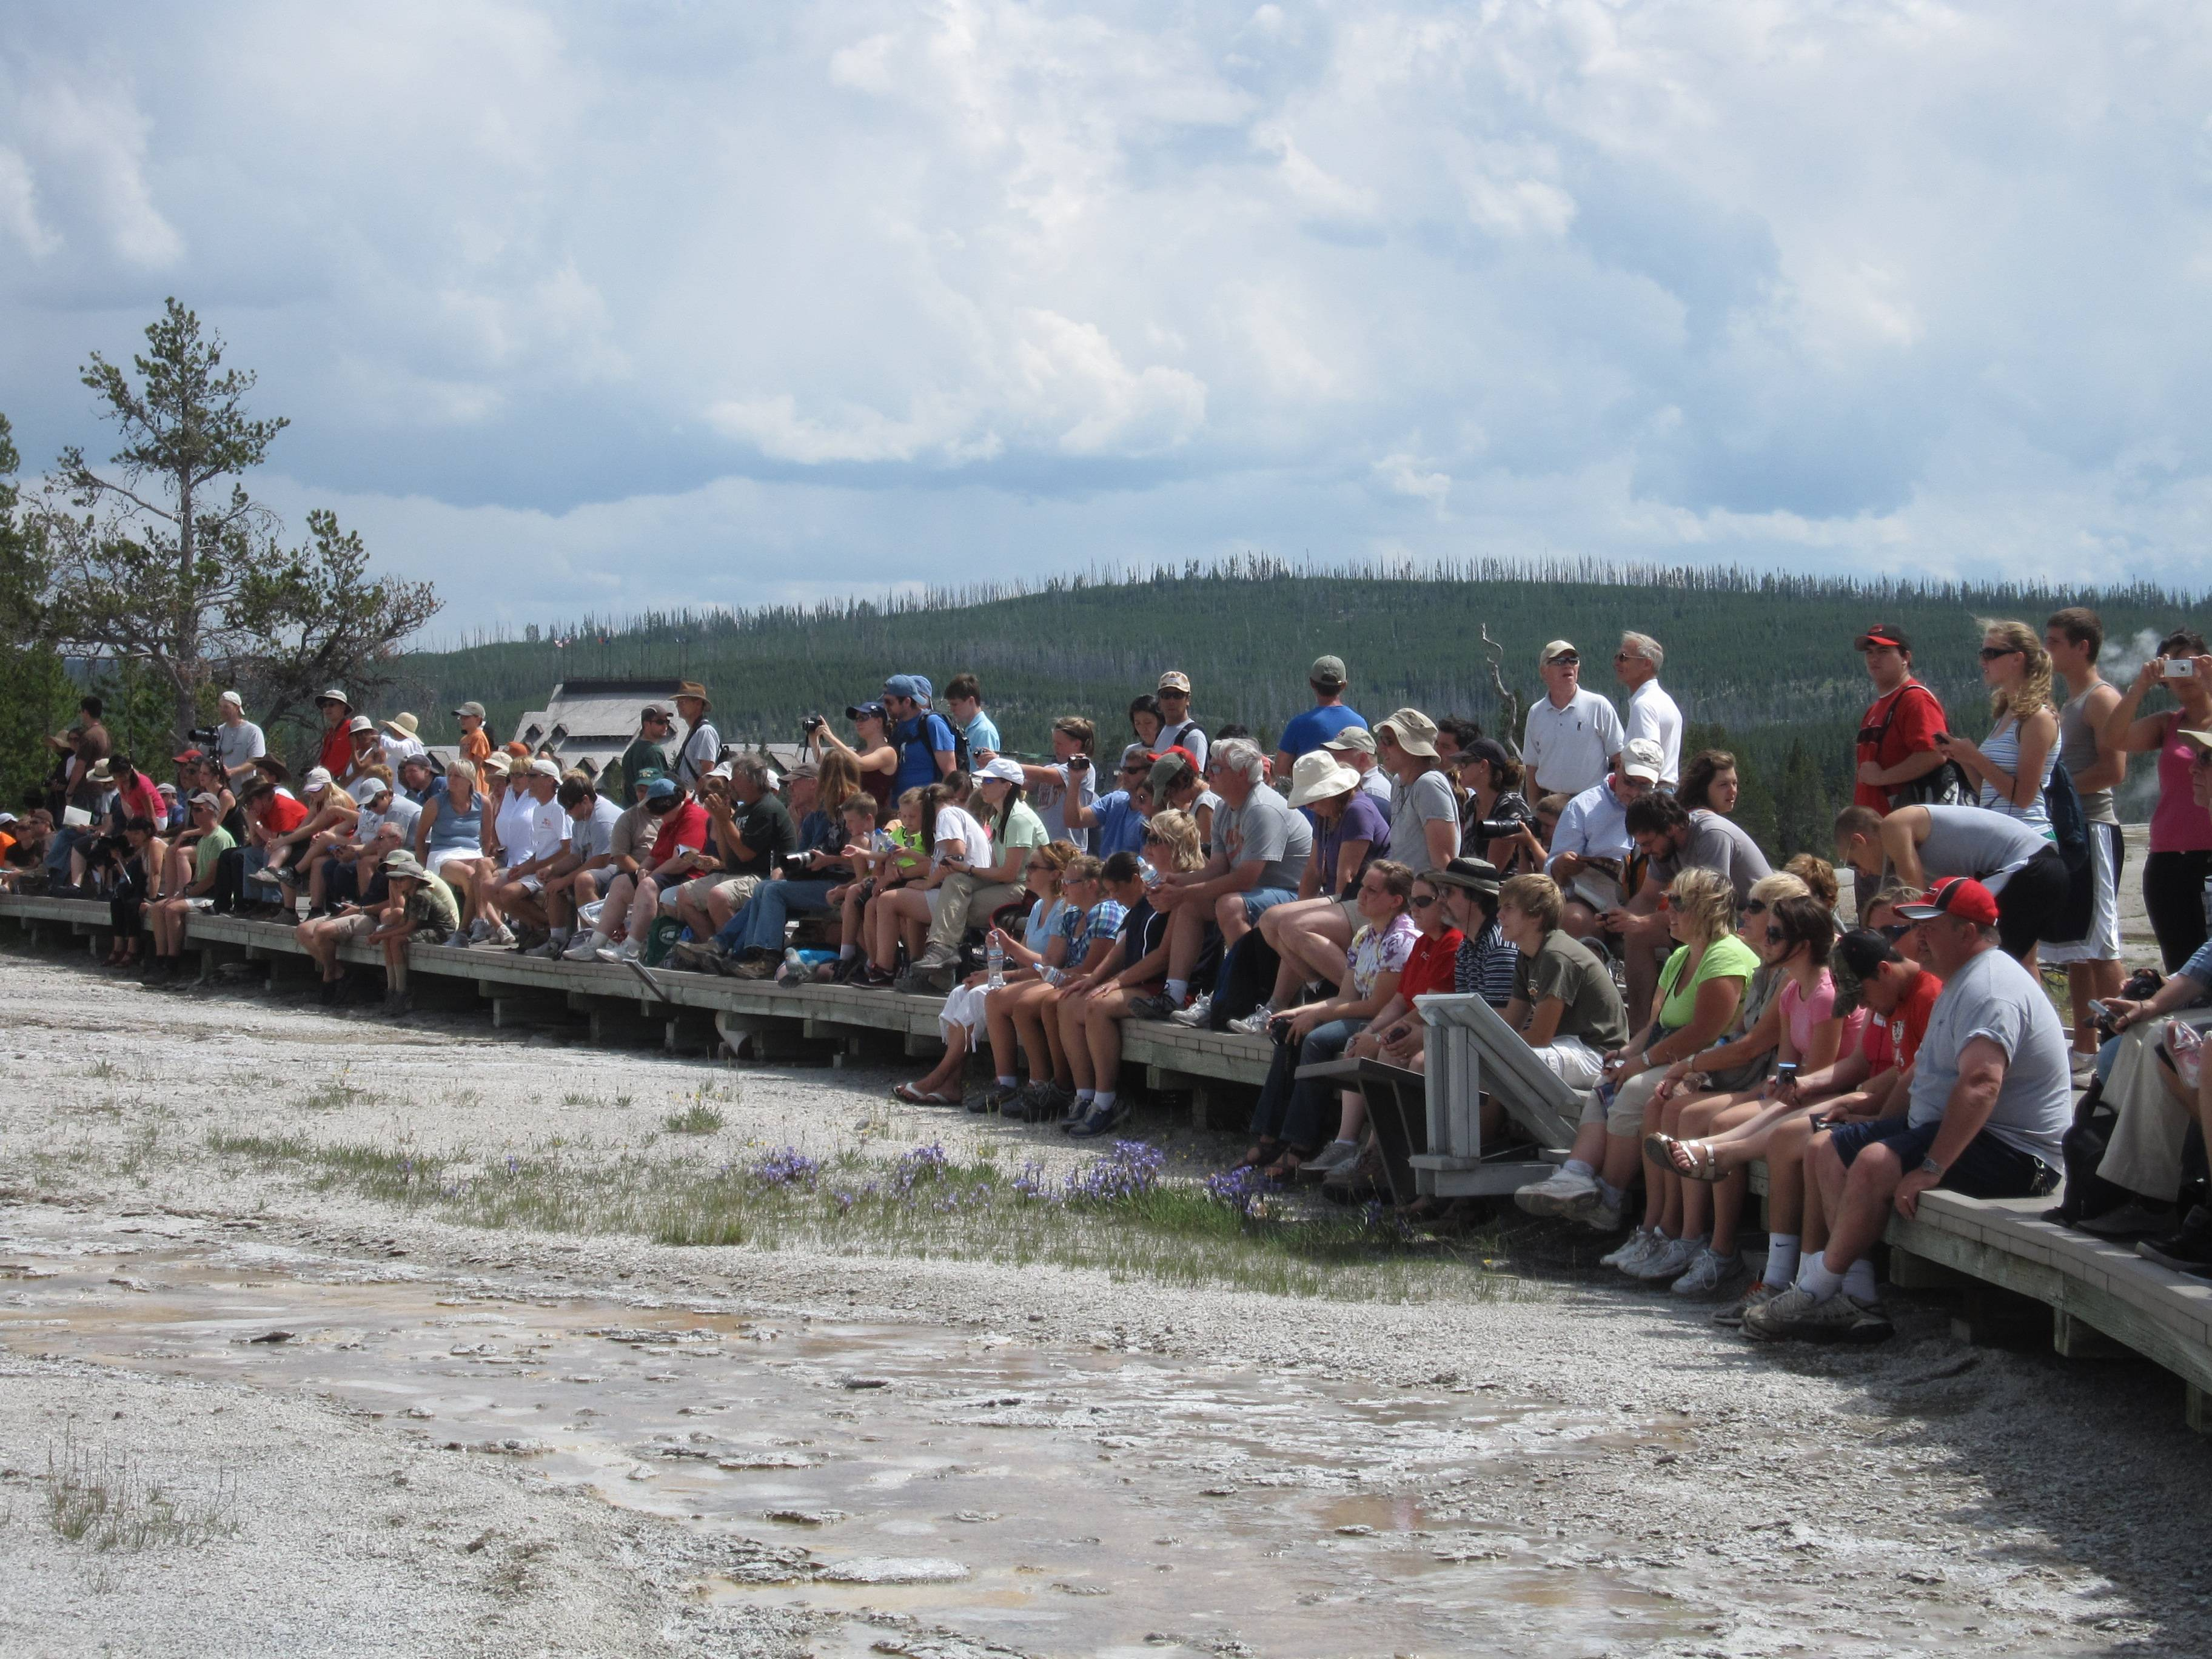 Tourists await the eruption of Grand Geyser in Yellowstone National Park in Wyoming. It's the tallest predictable geyser in the world, reaching 150 feet to 200 feet high, and one of a number of geysers that are concentrated along a 10-mile stretch in the park.